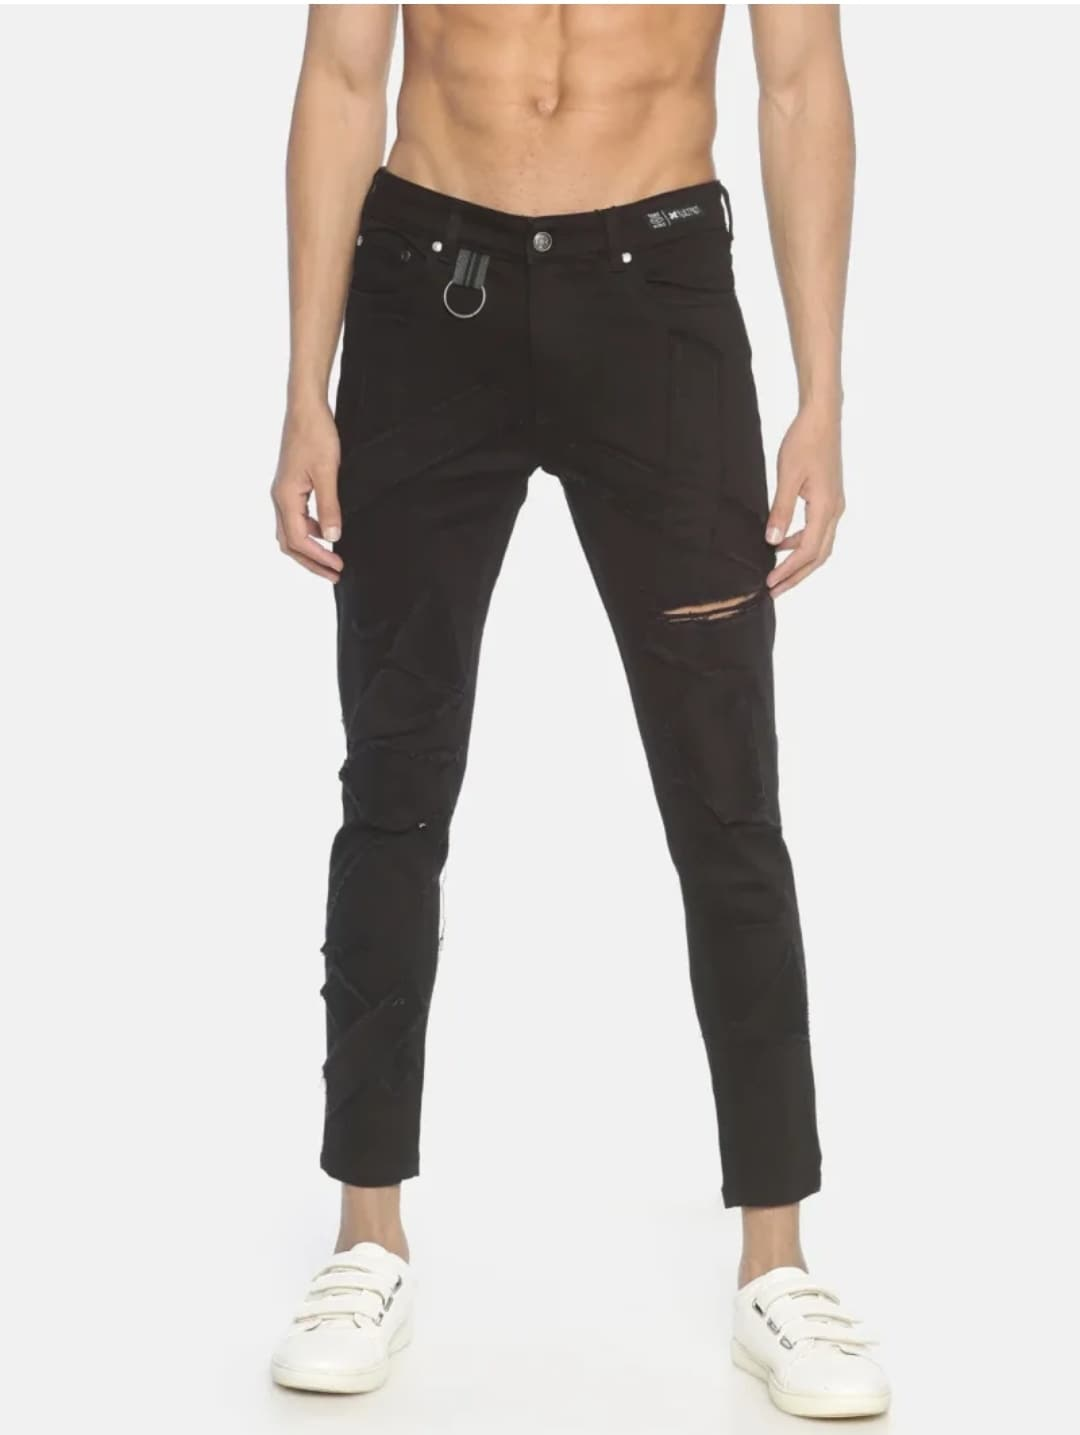 Men's Black Patchwork Jeans (36,Black)